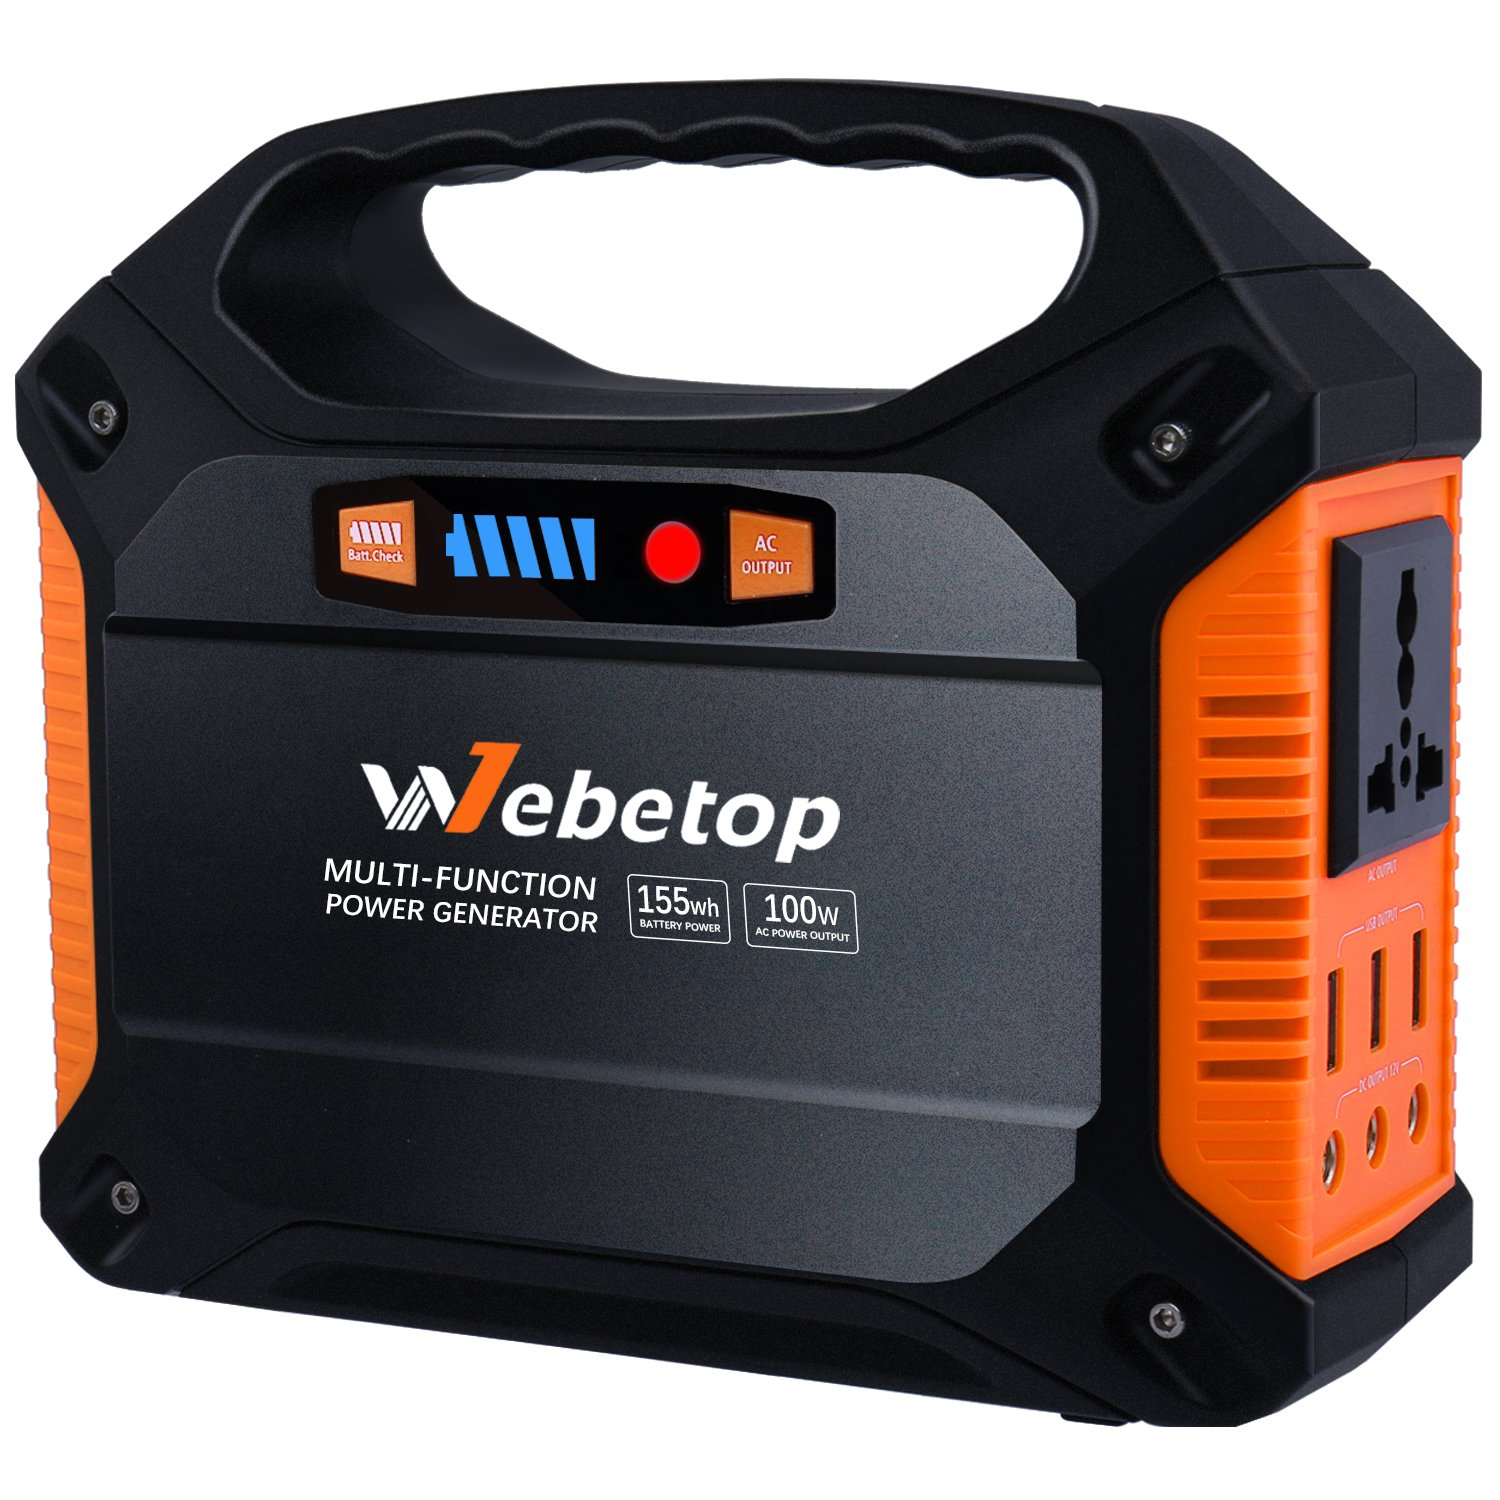 Webetop 155Wh 42000mAh Portable Generator Inverter Battery 100W Camping Emergency Home Use UPS Power Source Charged by Solar Panel/Wall Car with 110V AC Outlet,3 DC 12V,3 USB Port